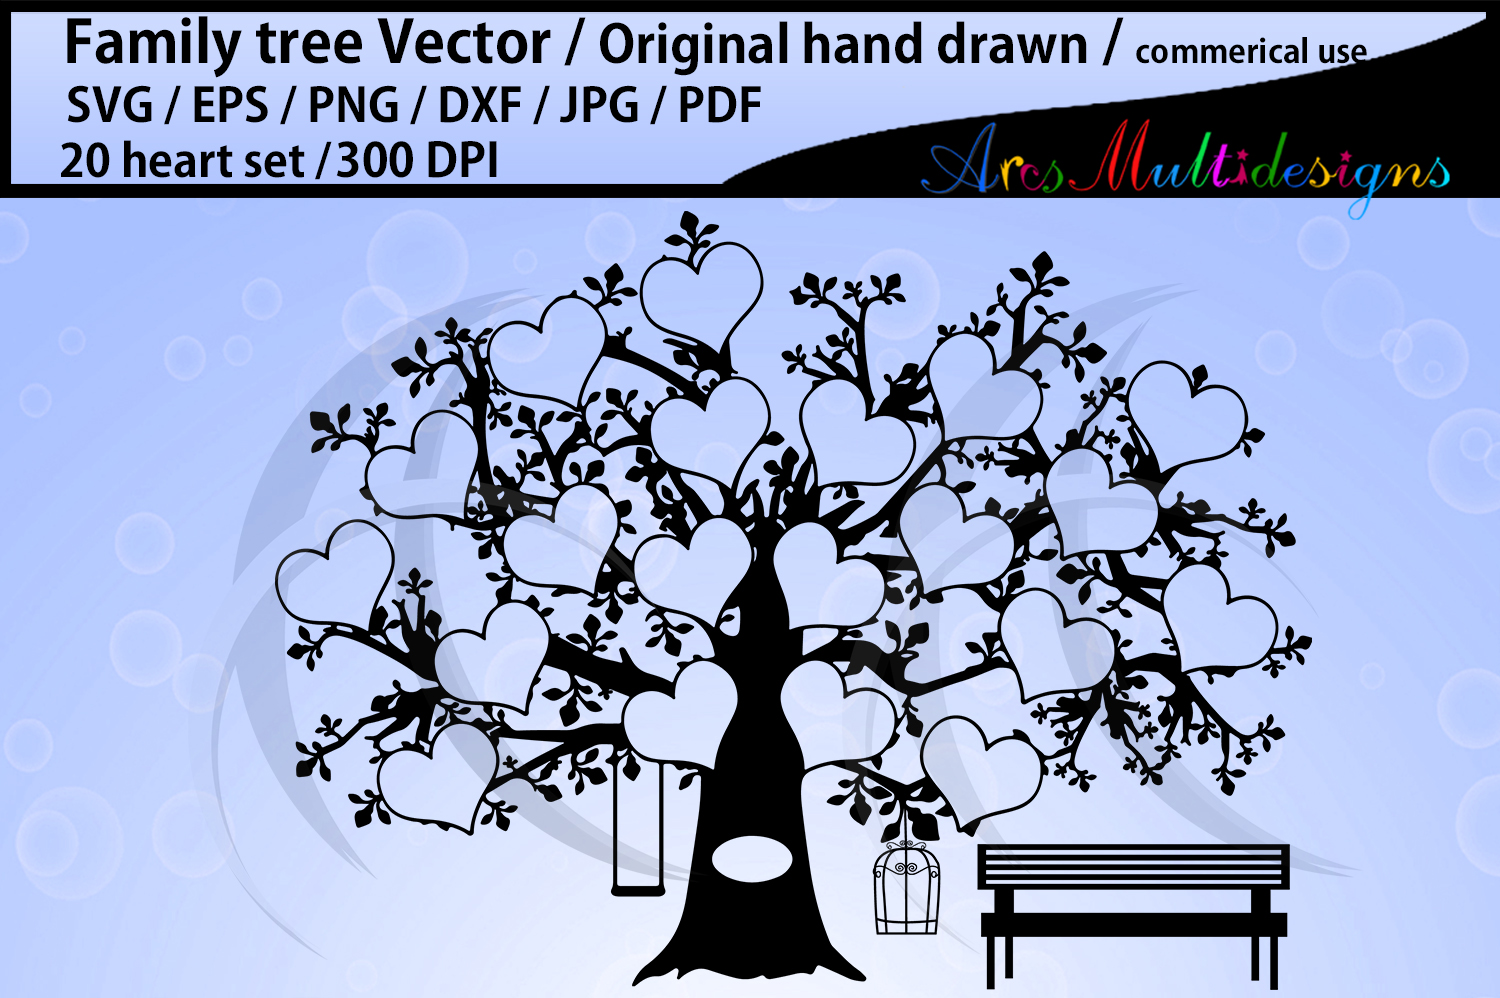 Download Free 20 Heart Family Tree 20 Names Grafik Von Arcs Multidesigns for Cricut Explore, Silhouette and other cutting machines.